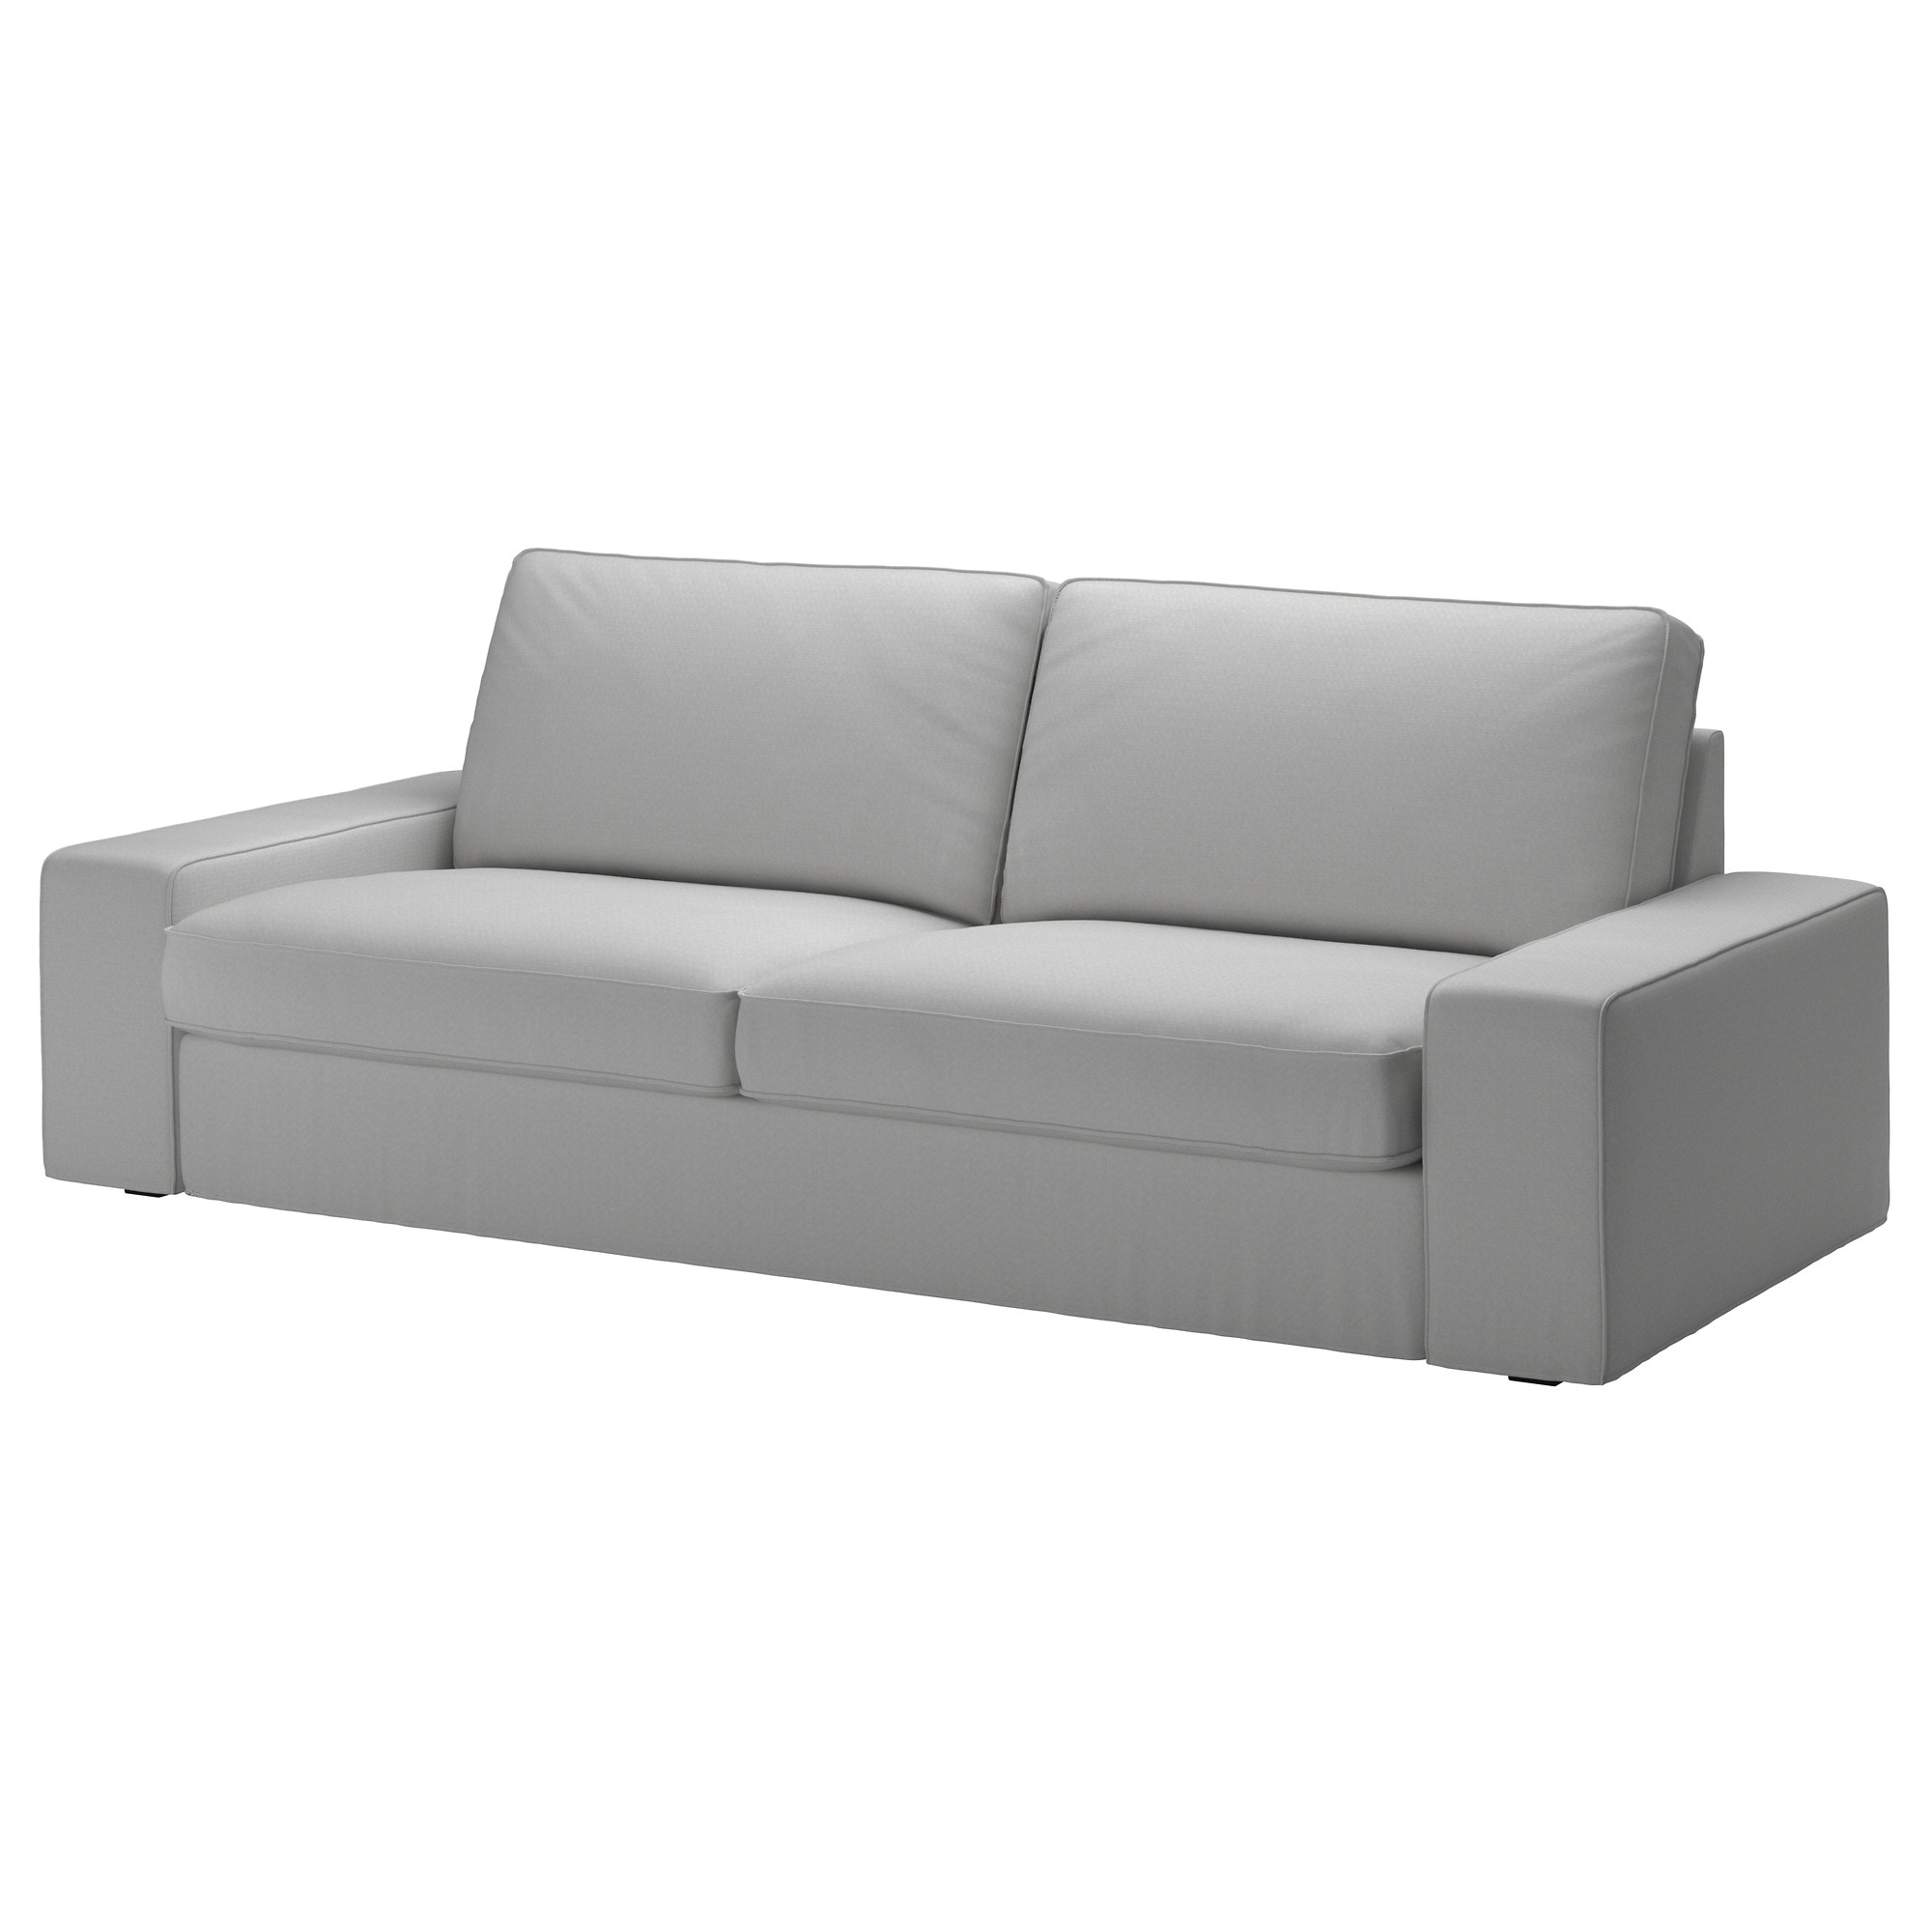 2er sofa ikea  KIVIK Sofa - Orrsta light gray - IKEA